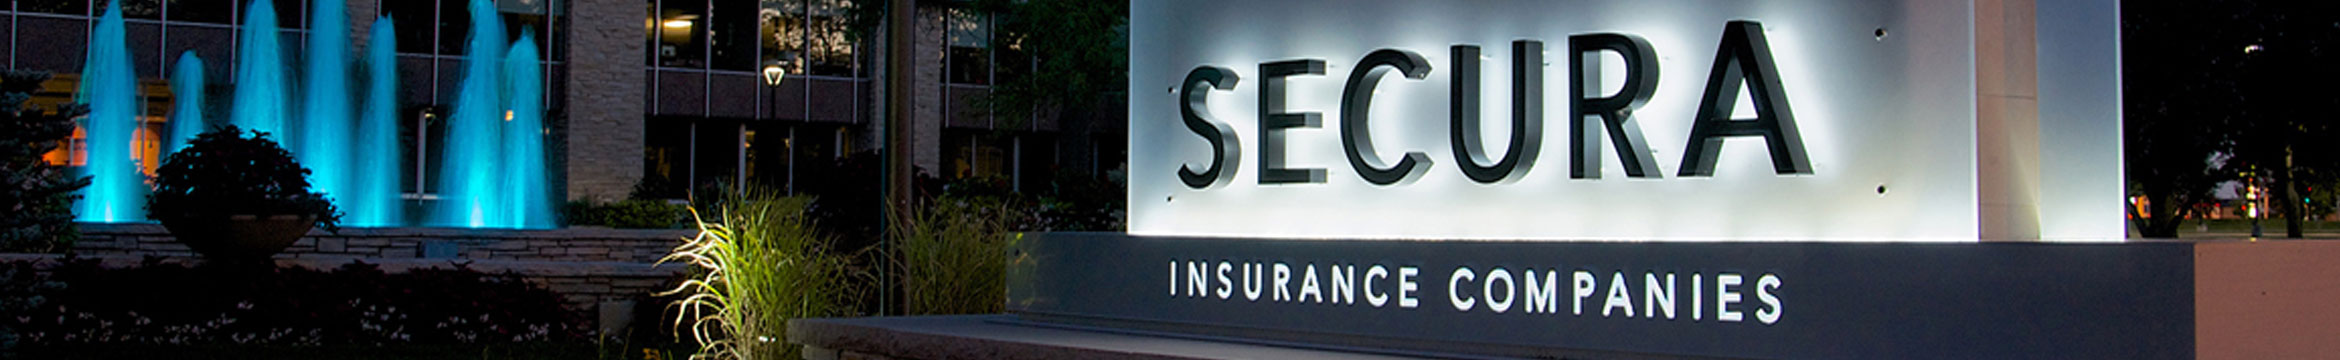 Great service and reliable strength are why SECURA ranks among the top 50 insurance companies in the nation for business, home & auto, farm, & nonprofits.